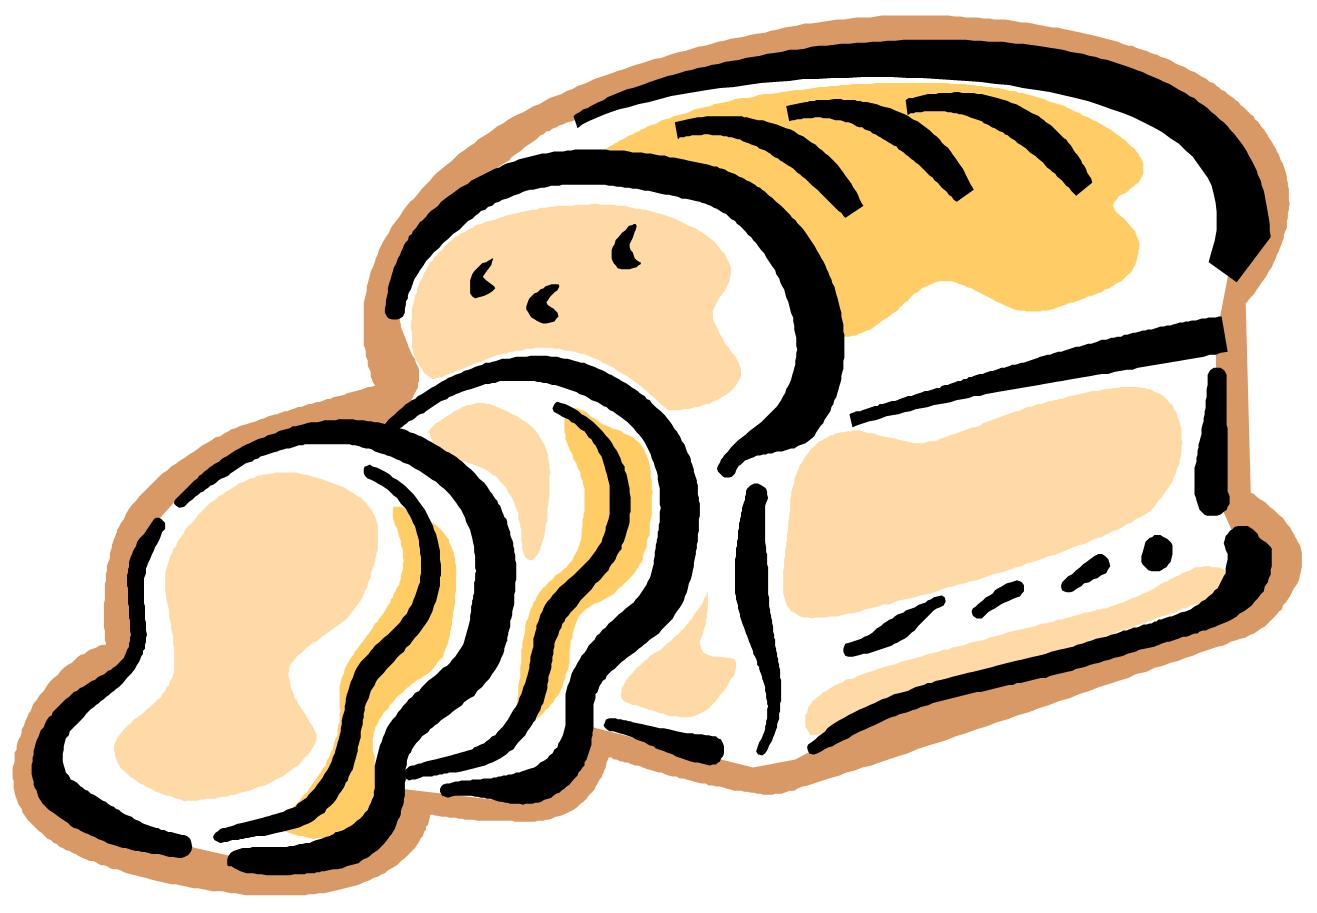 Free clipart loaf of bread. Download clip art on